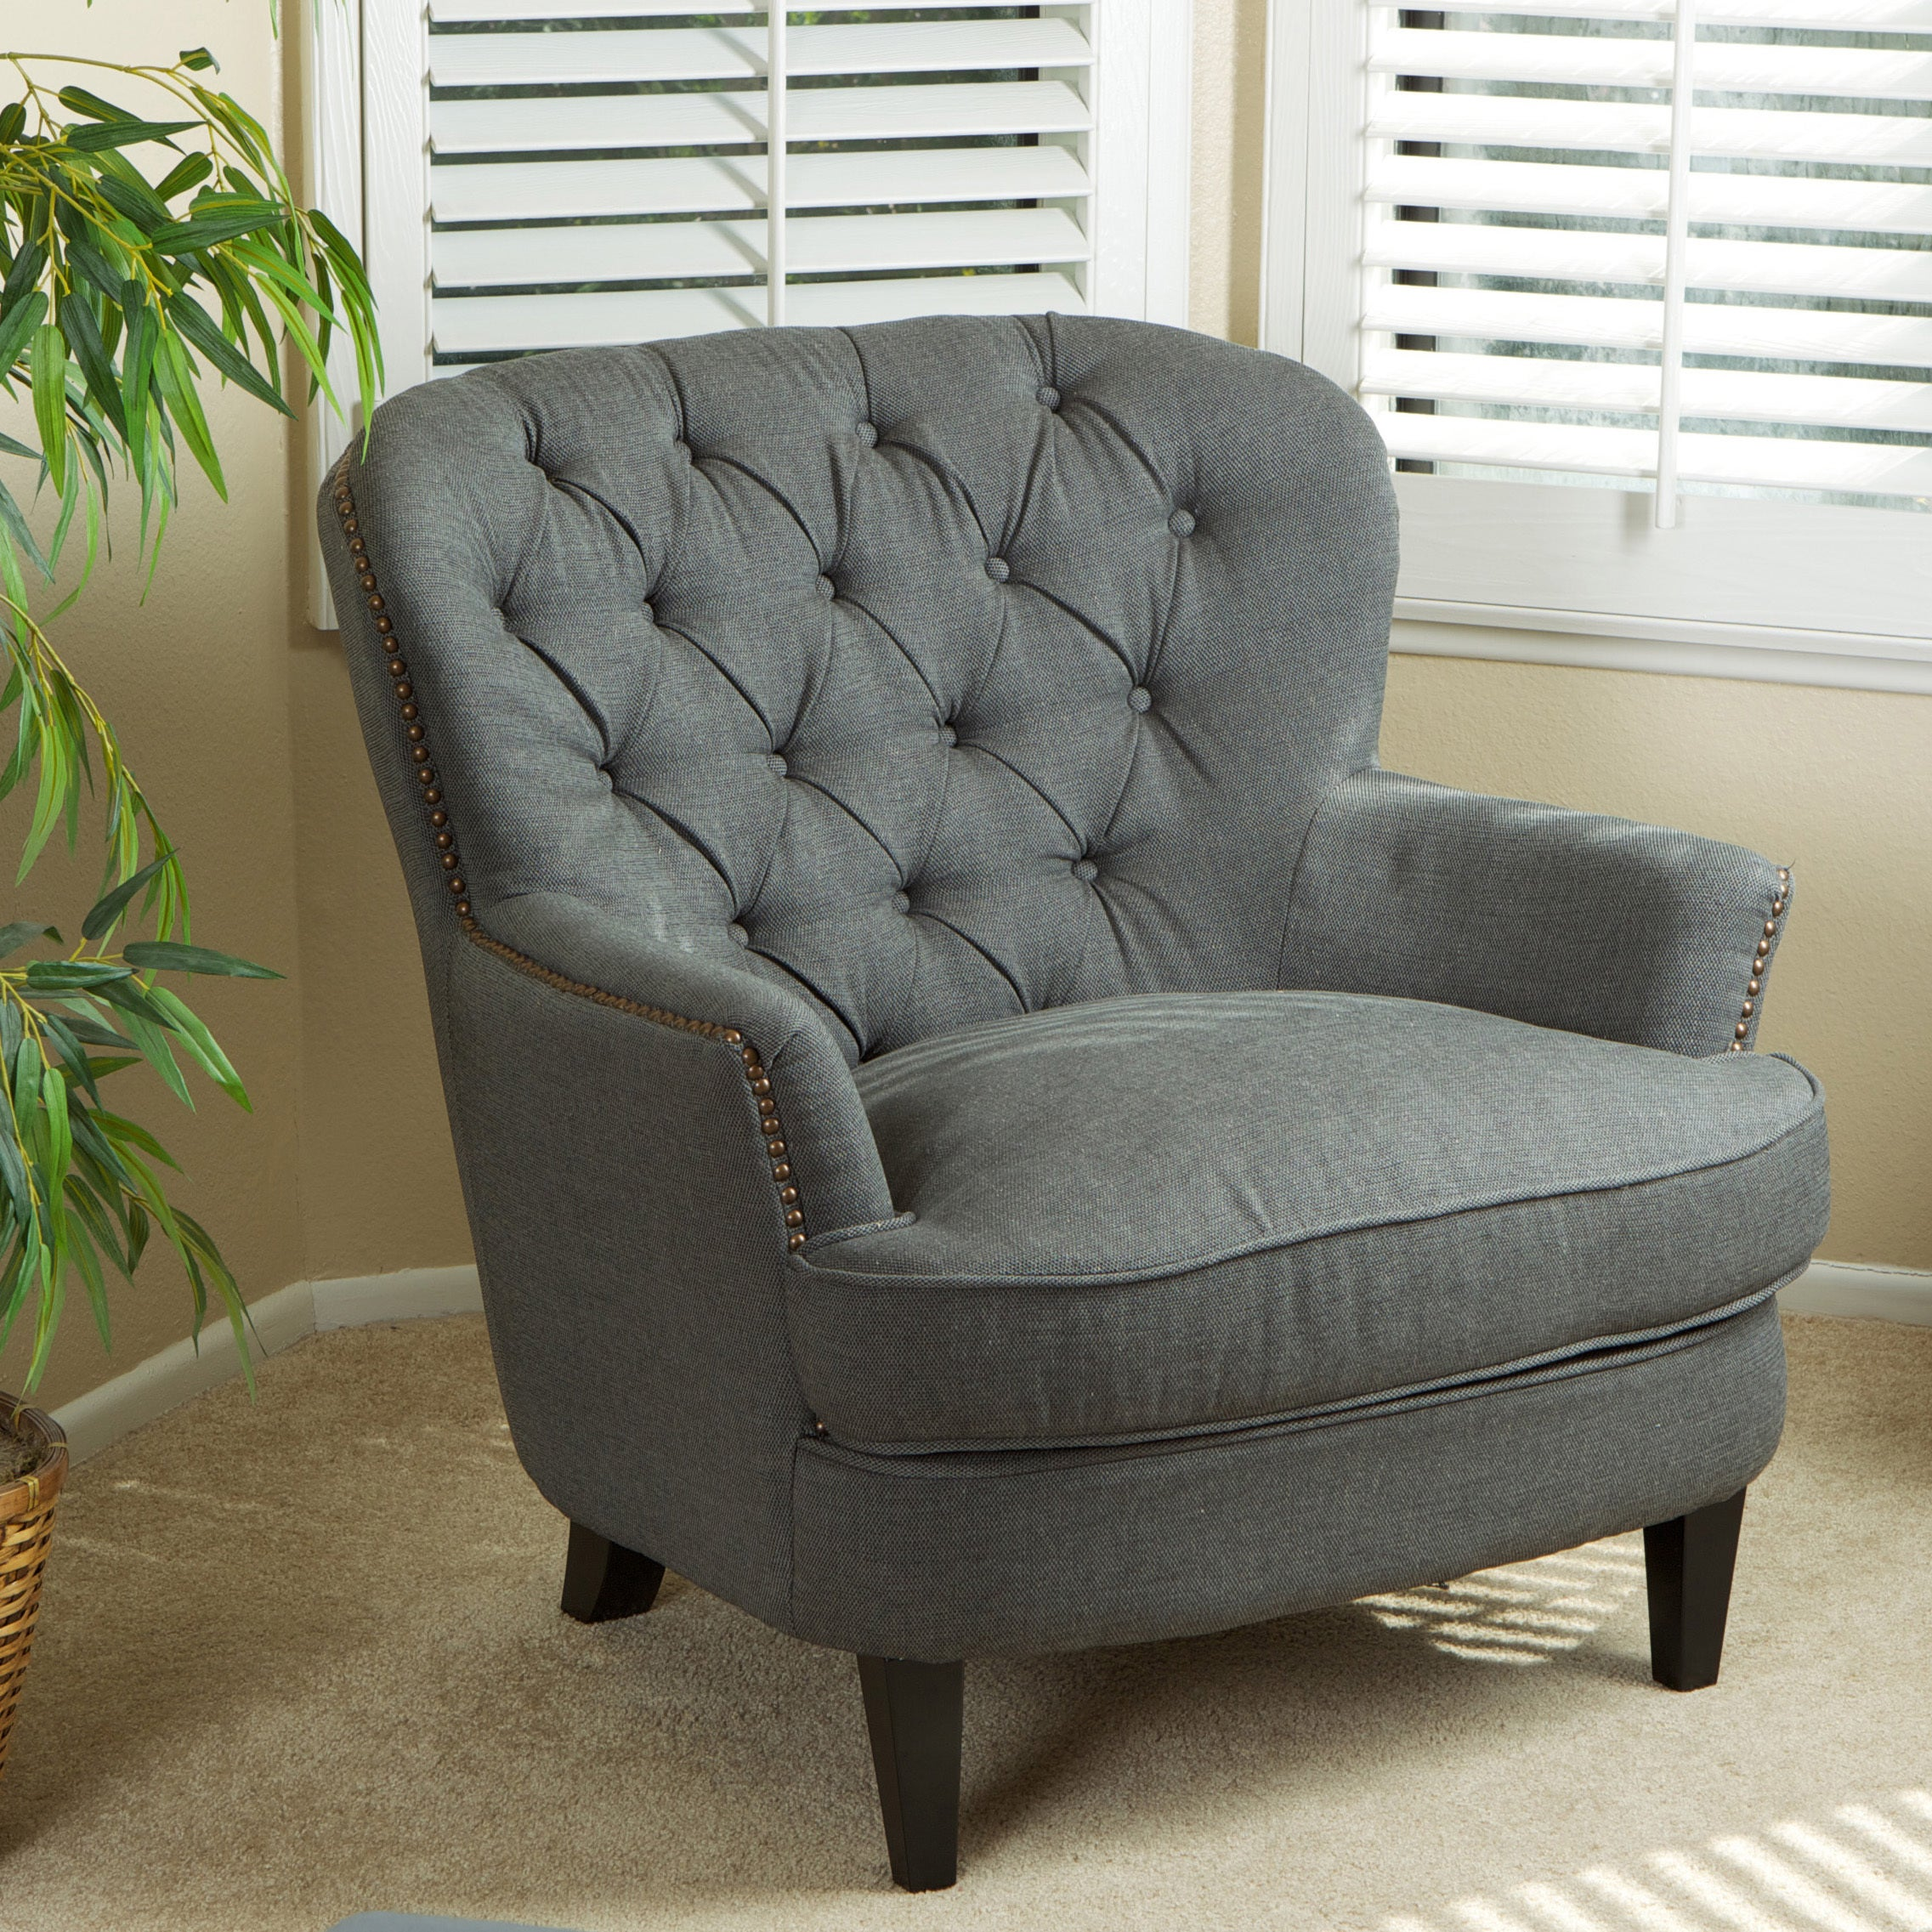 1Cheap Christopher Knight Home Tafton Tufted Grey Fabric